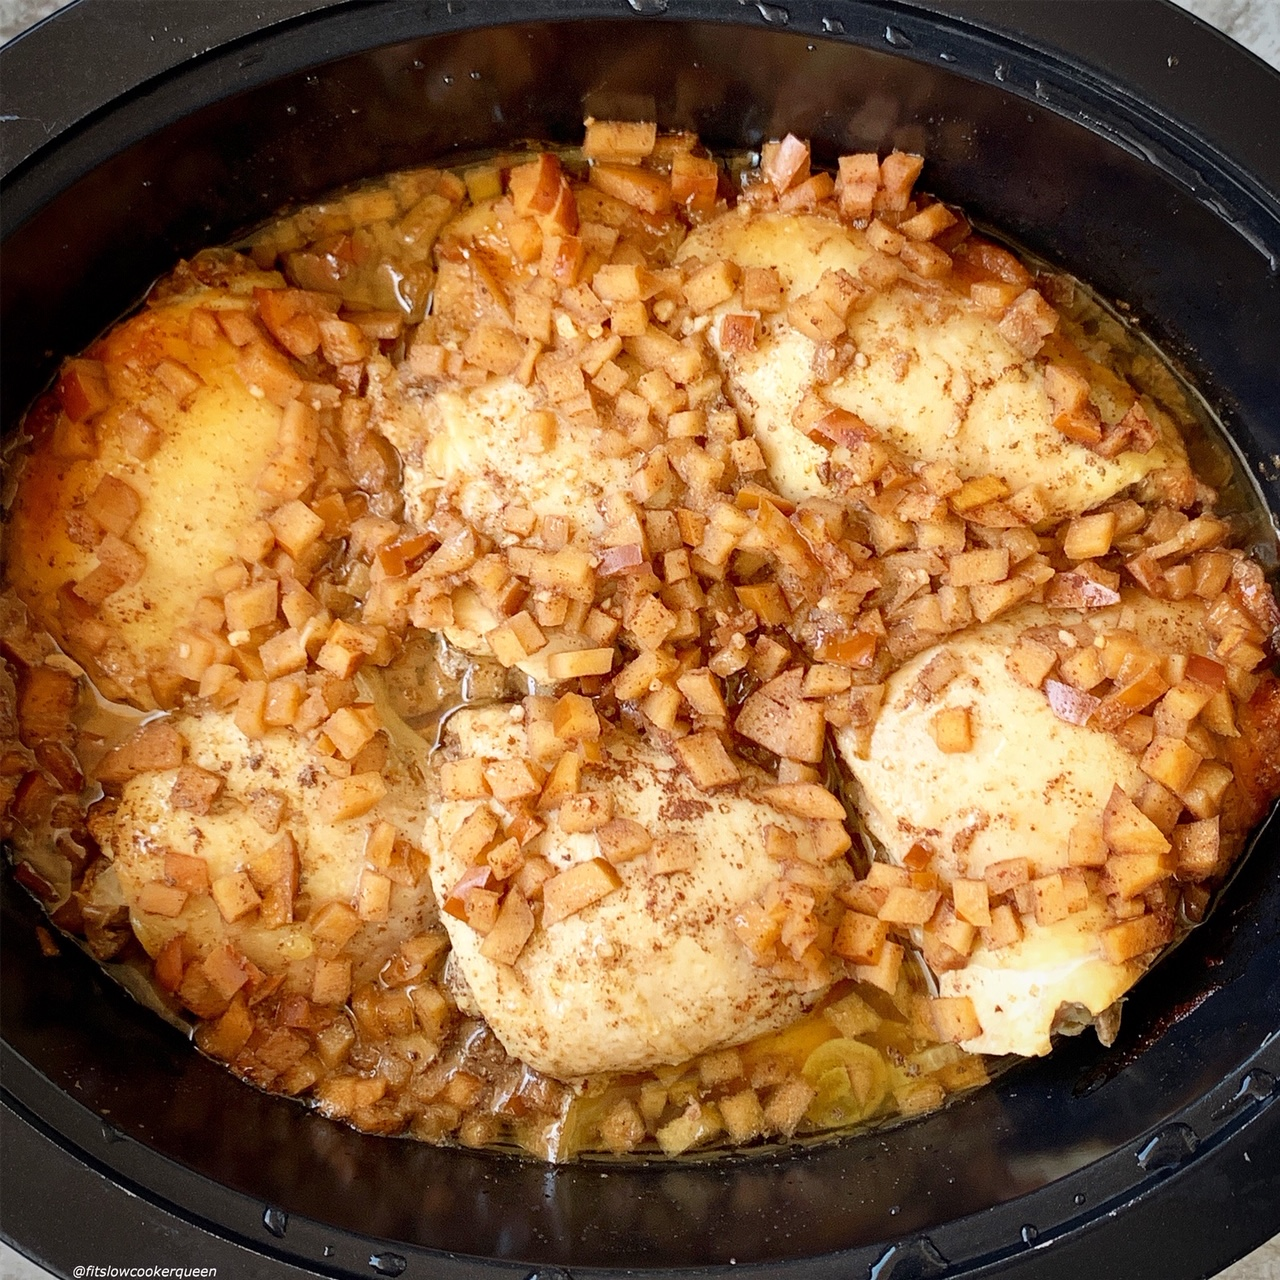 after pic of cooked chicken in the slow cooker for Slow Cooker or Instant Pot Chicken with Apples & Honey (